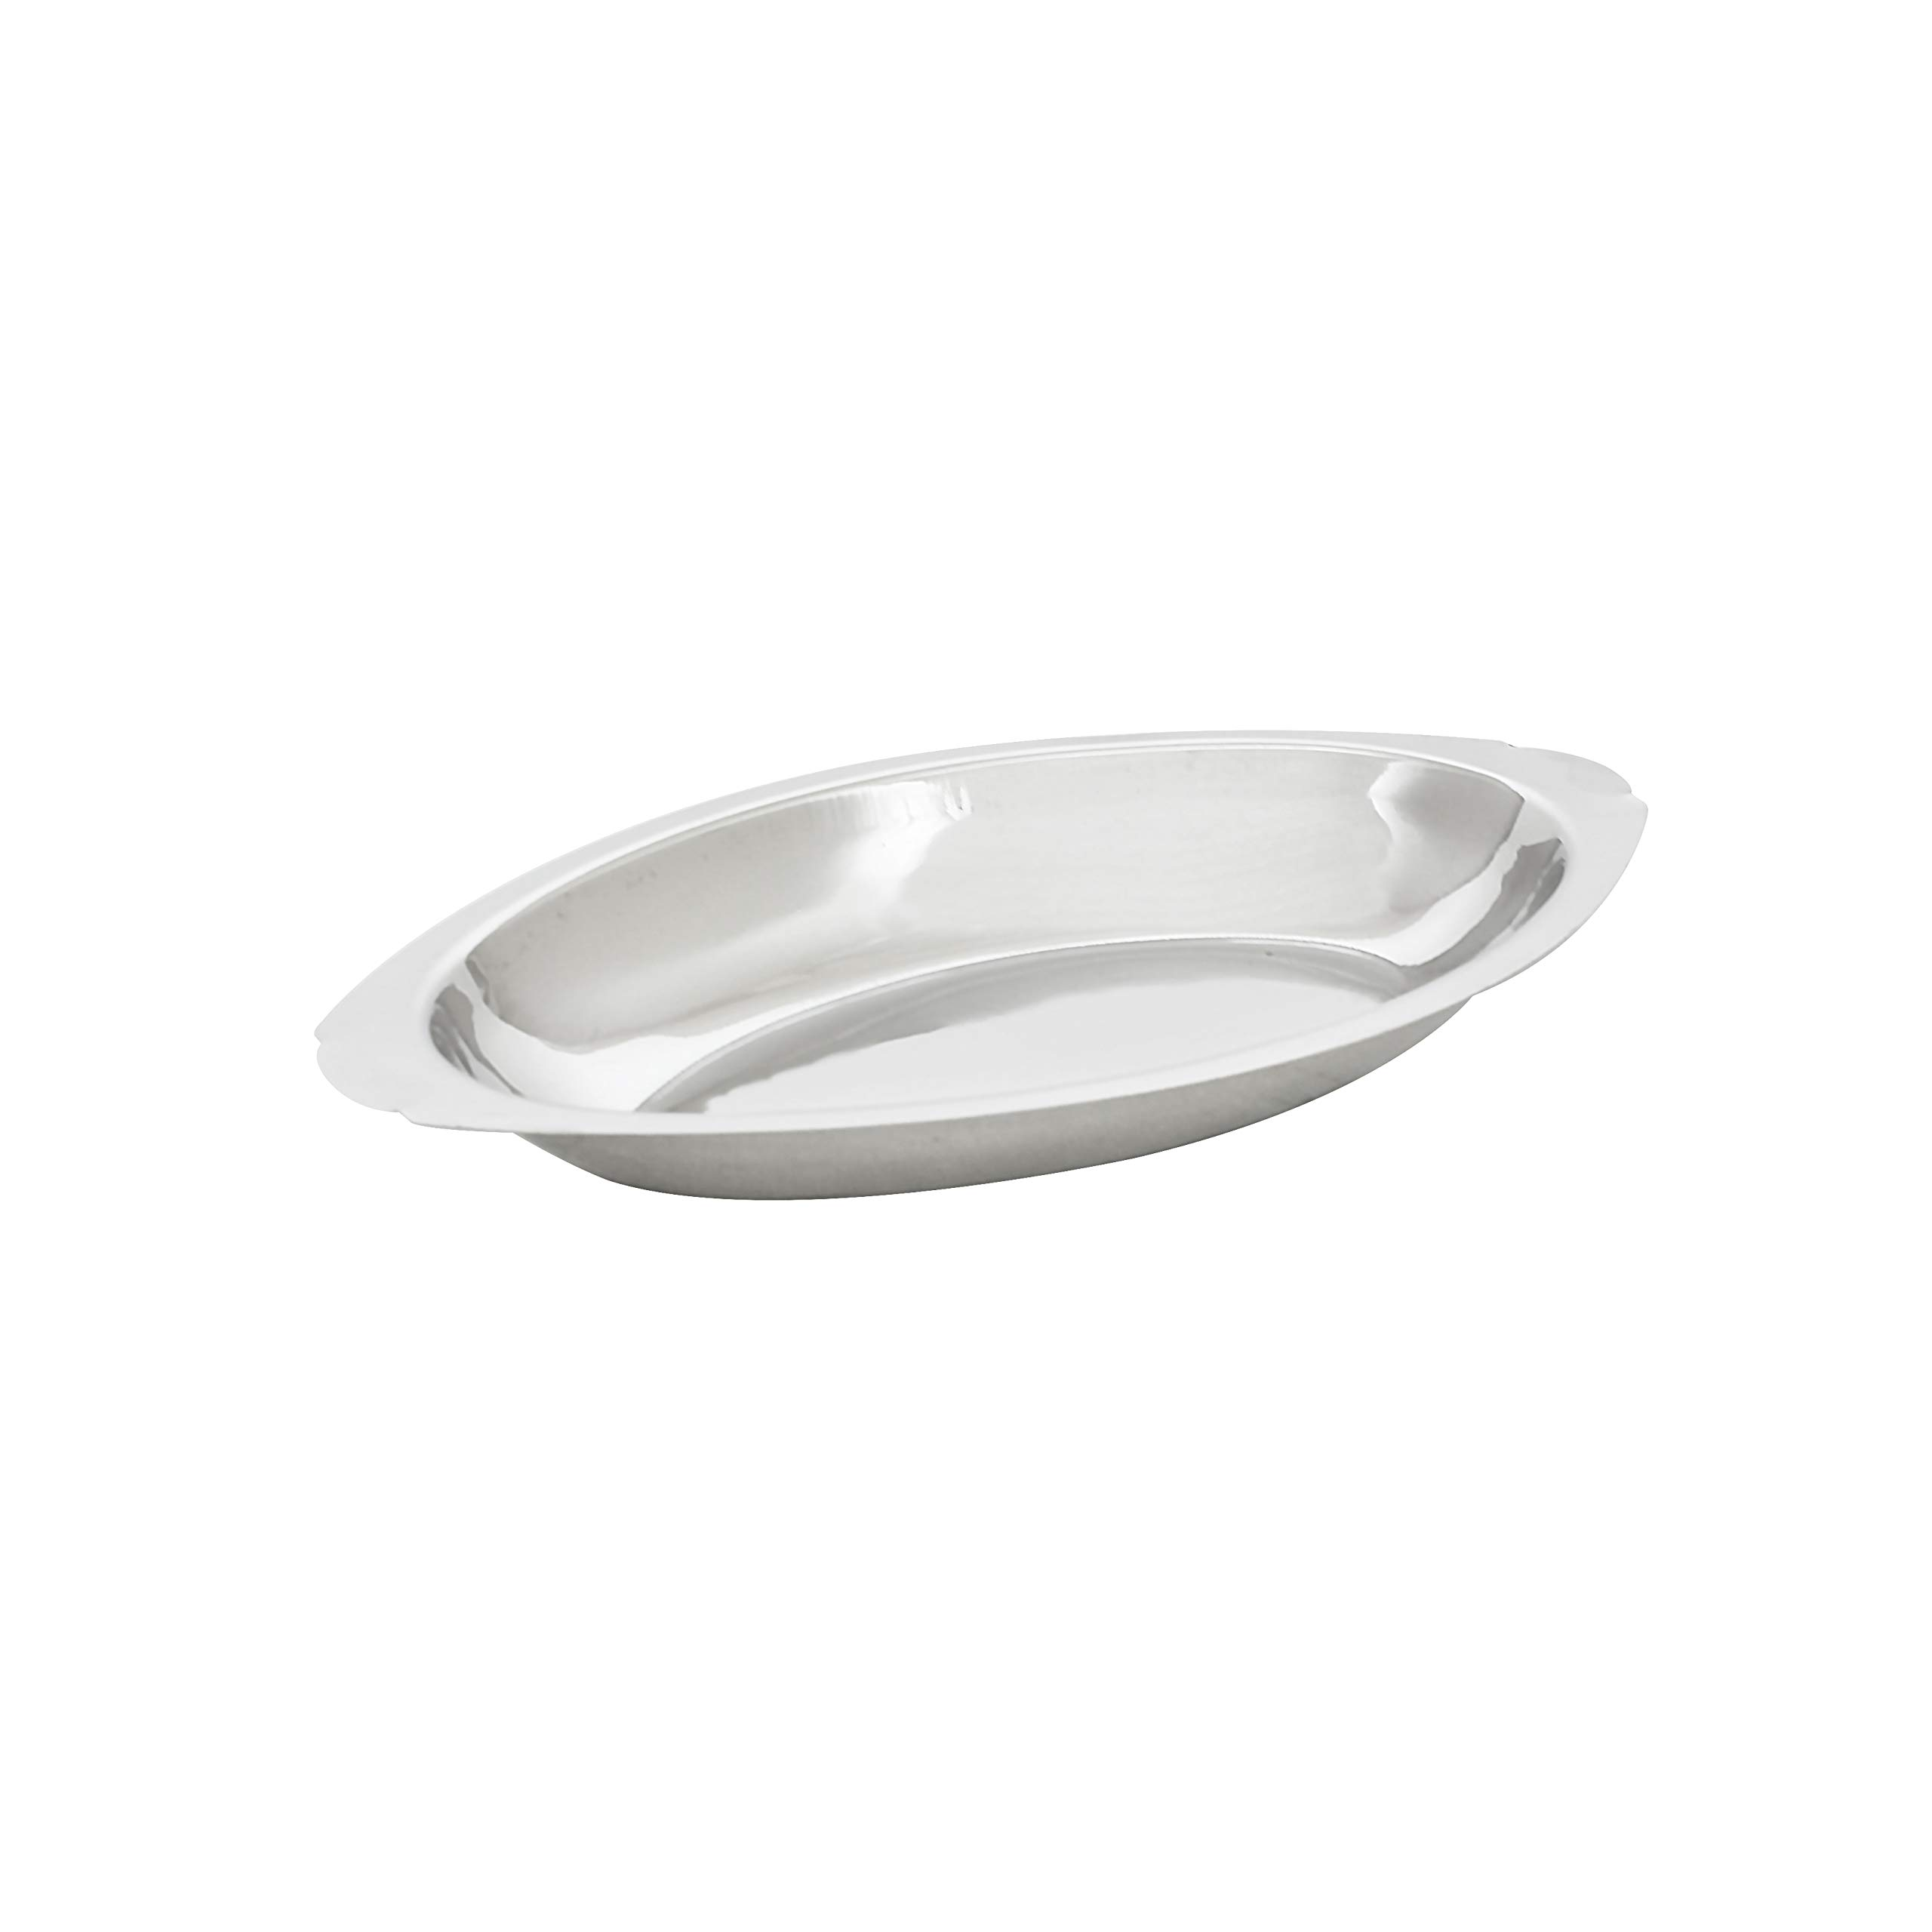 Thunder Group SLGT108 Oval Au Gratin Tray, 8-Ounce